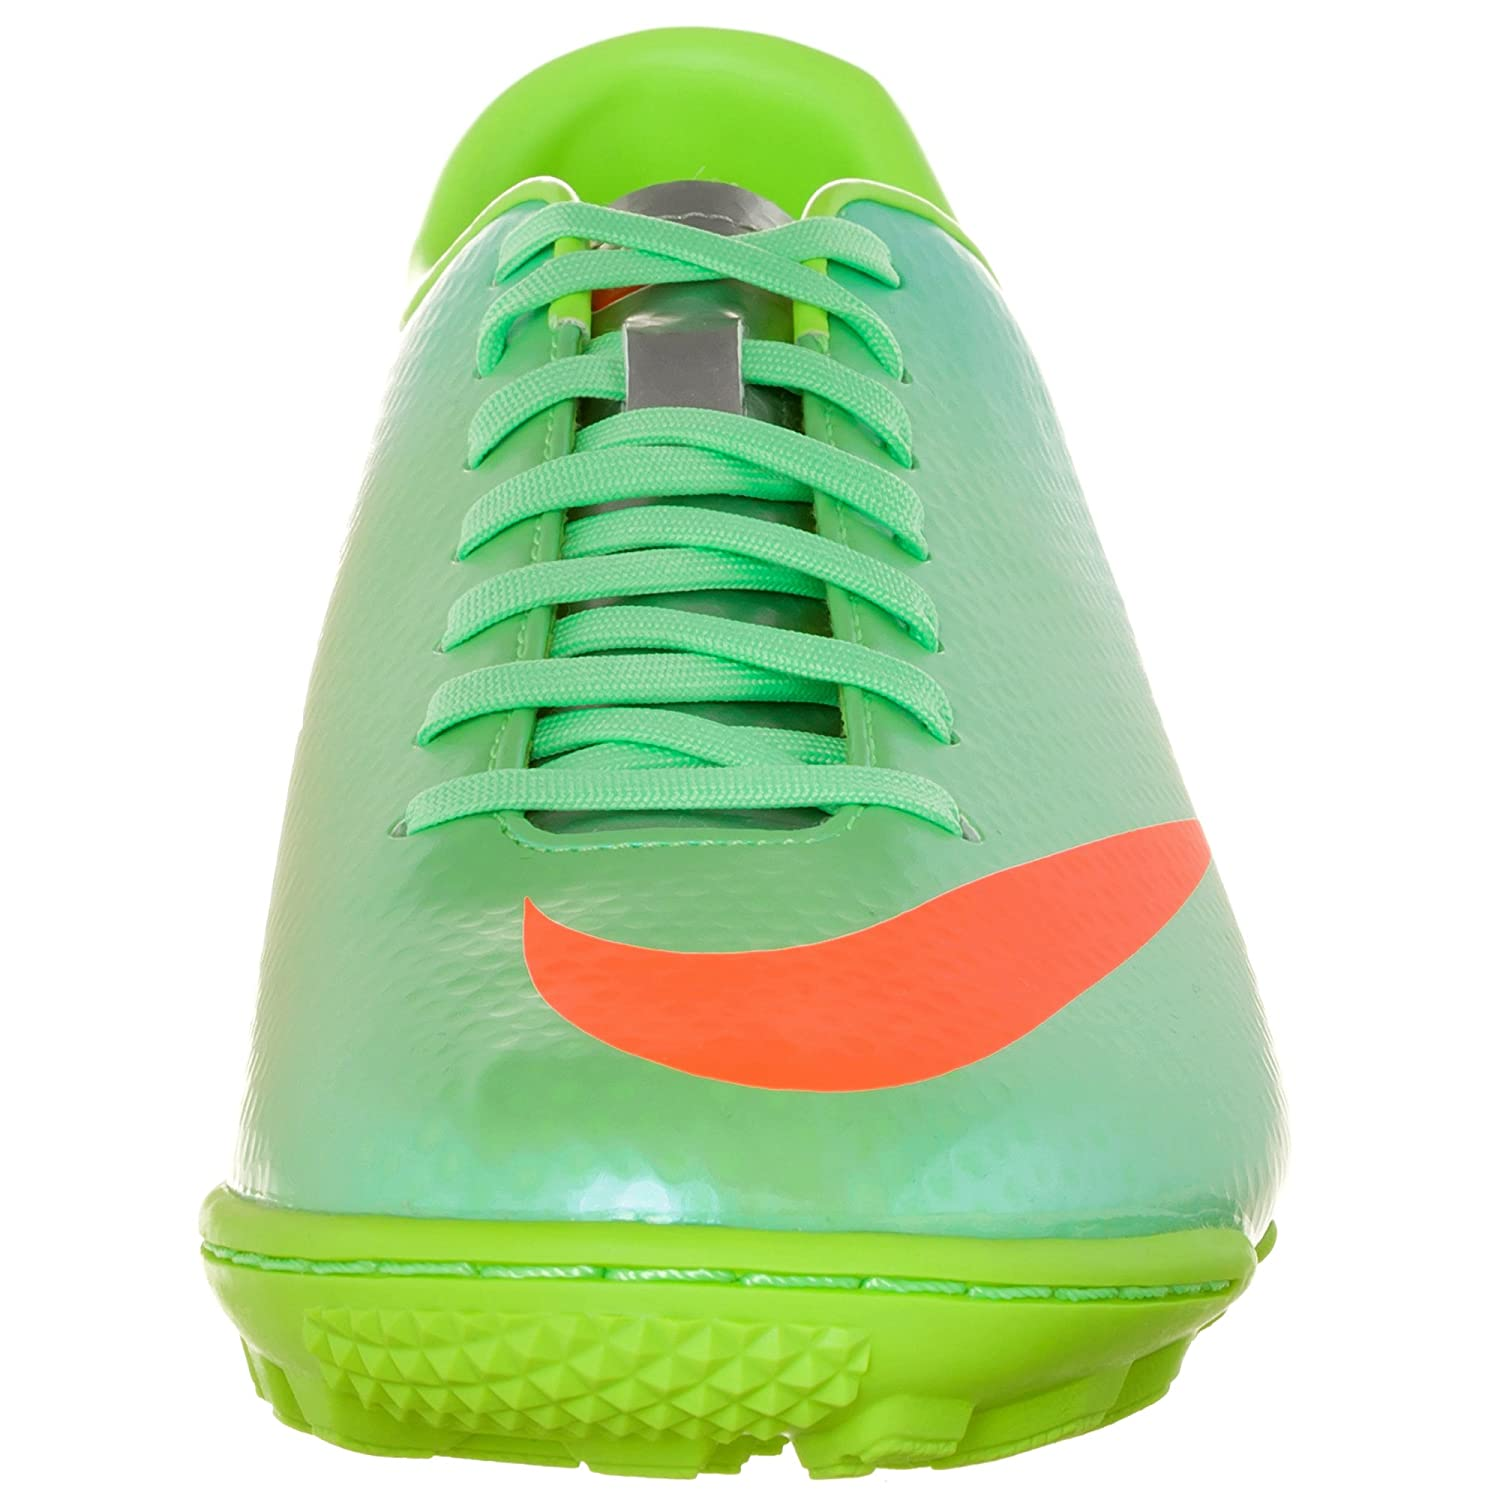 b53d1a63af84 NIKE MERCURIAL VICTORY IV TF 555615 380 MENS SOCCER SNEAKERS 6